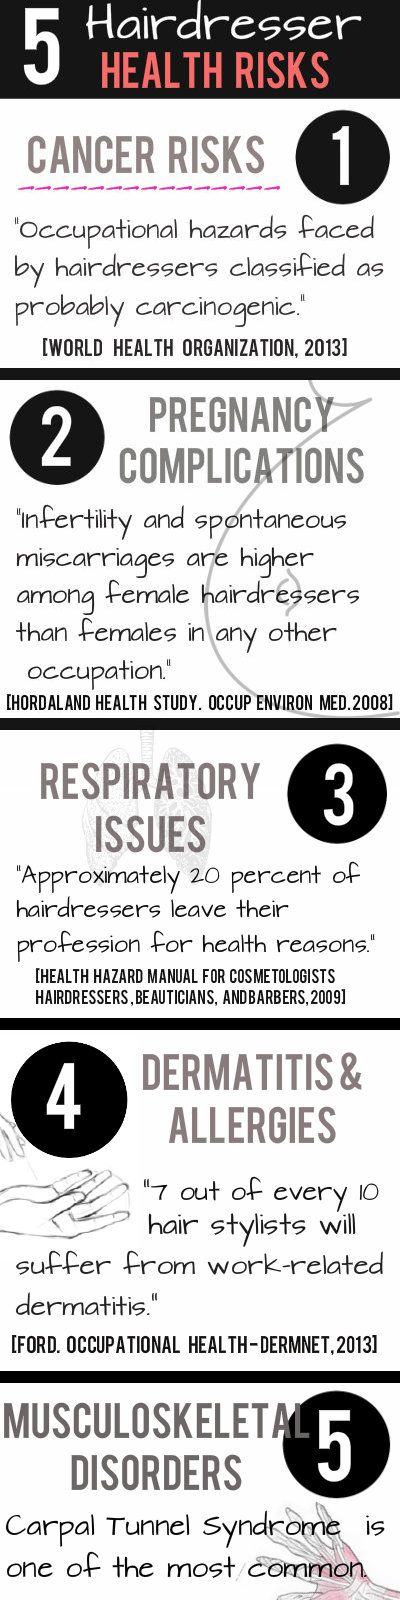 5 Hair Stylist Health Issues That Should Be Addressed [Article & INFOGRAPHIC] #hairstylist #health